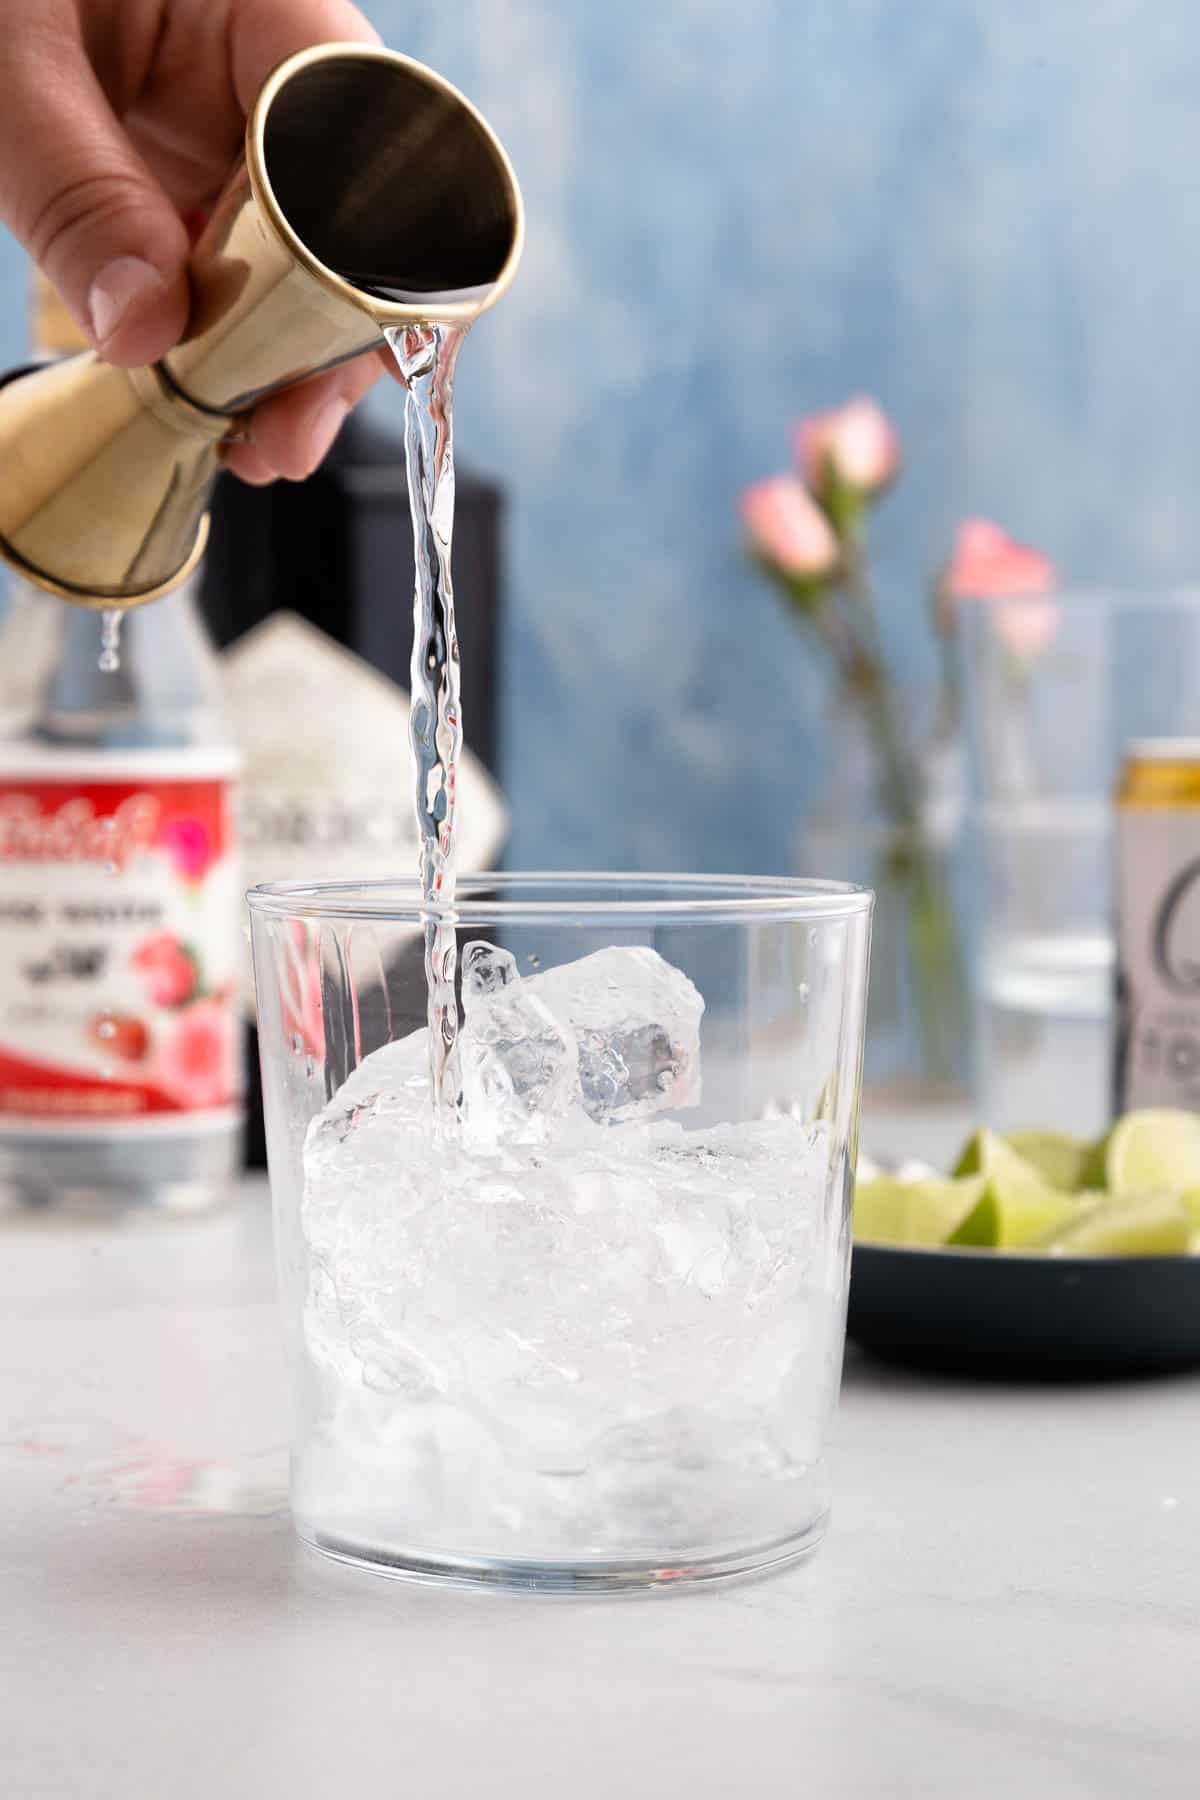 pouring clear liquor into a glass with ice